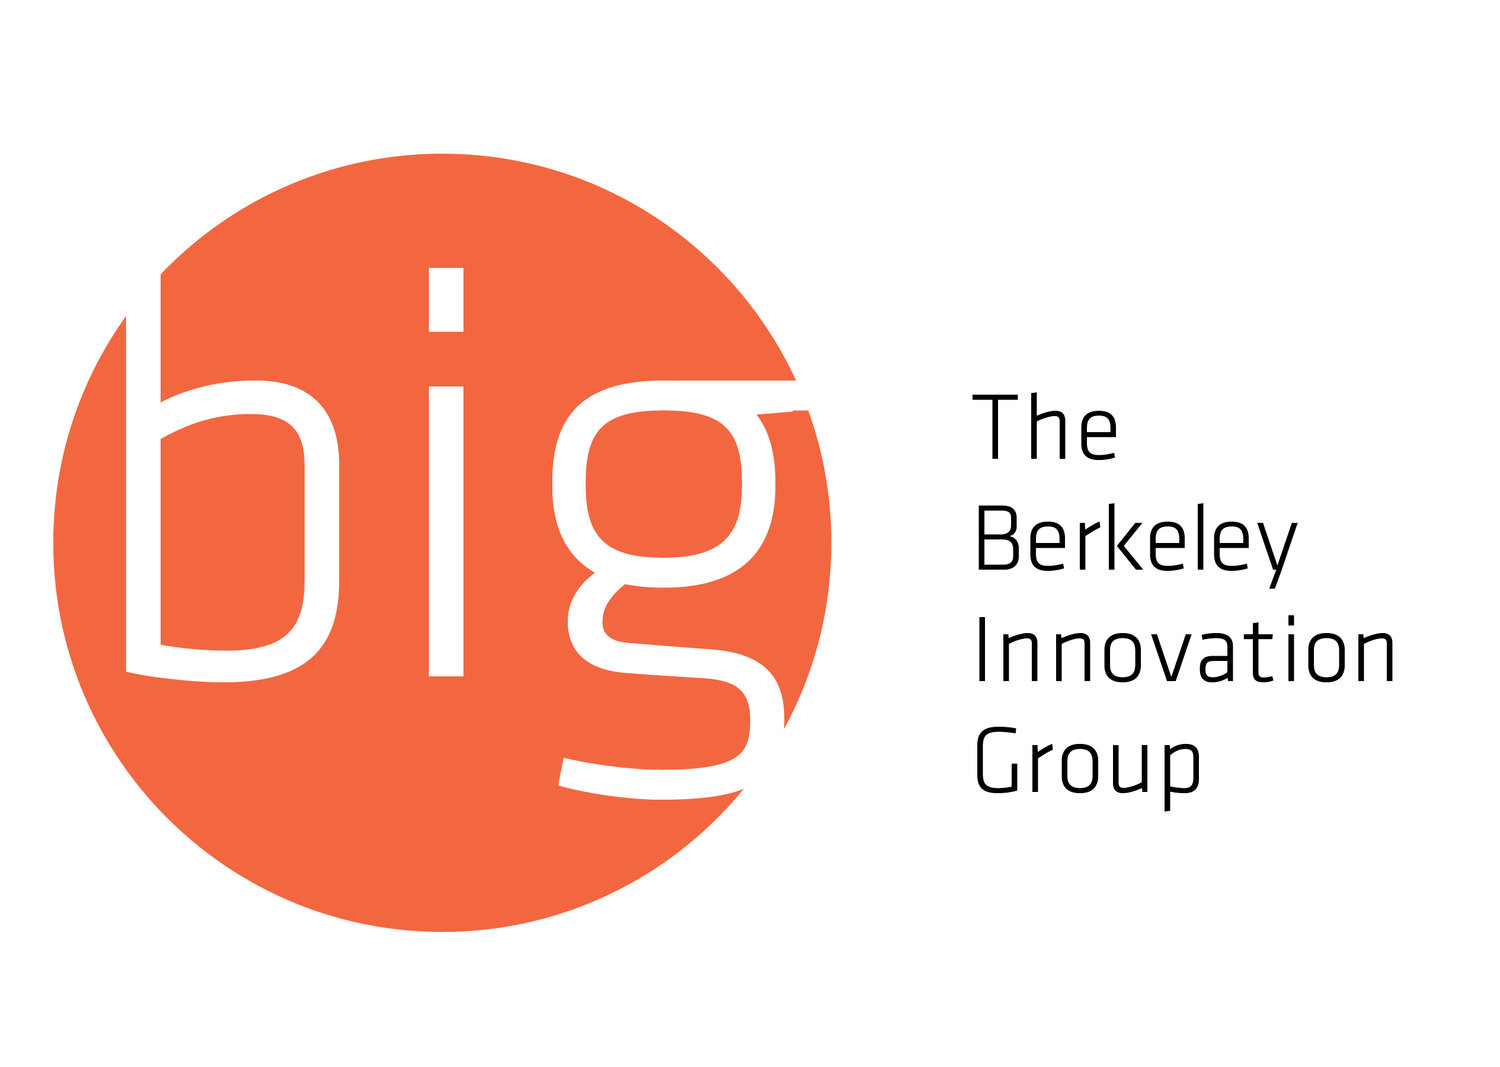 The Berkeley Innovation Group